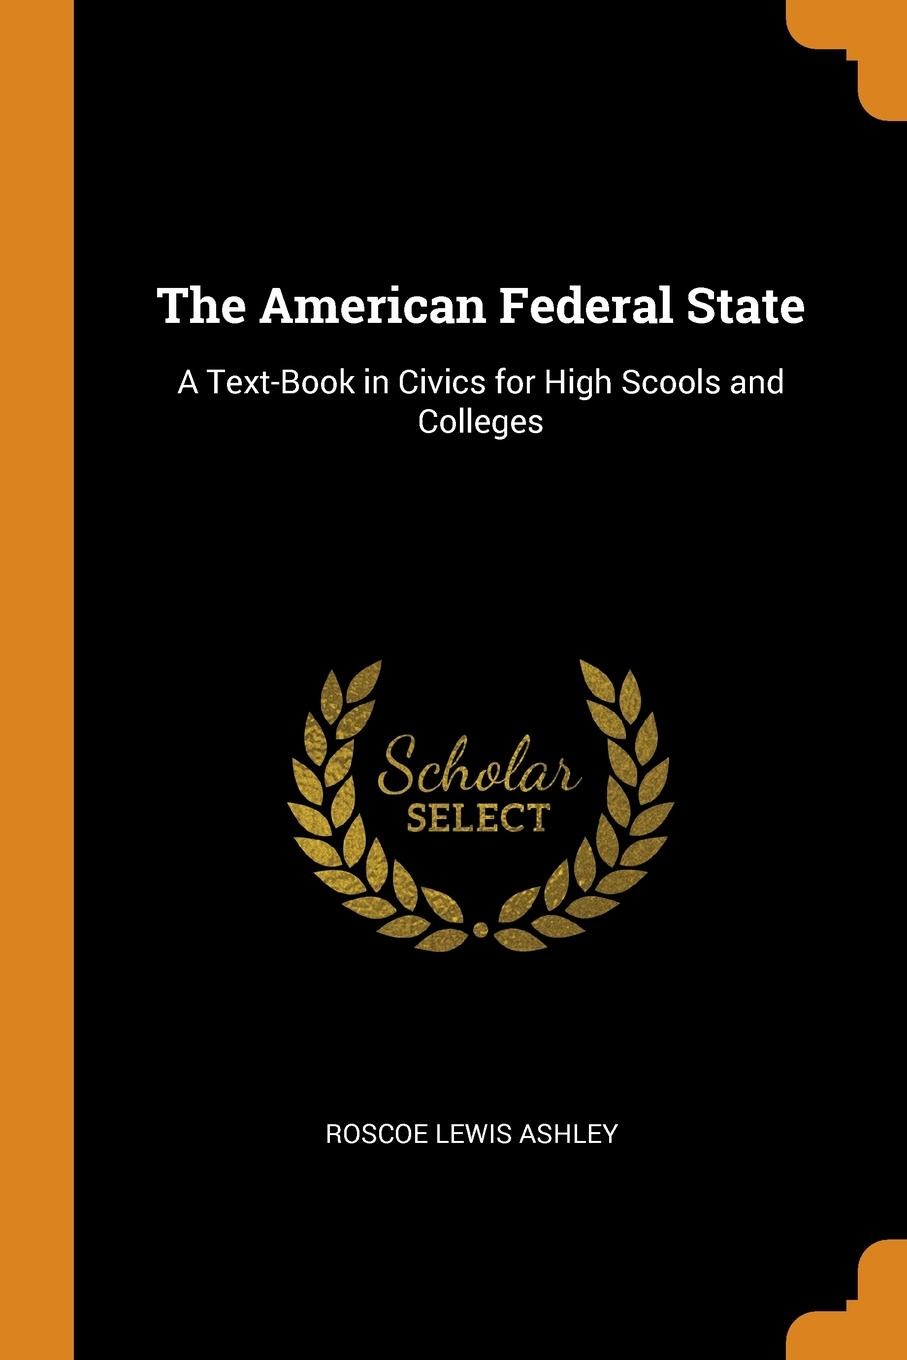 The American Federal State. A Text-Book in Civics for High Scools and Colleges. Roscoe Lewis Ashley